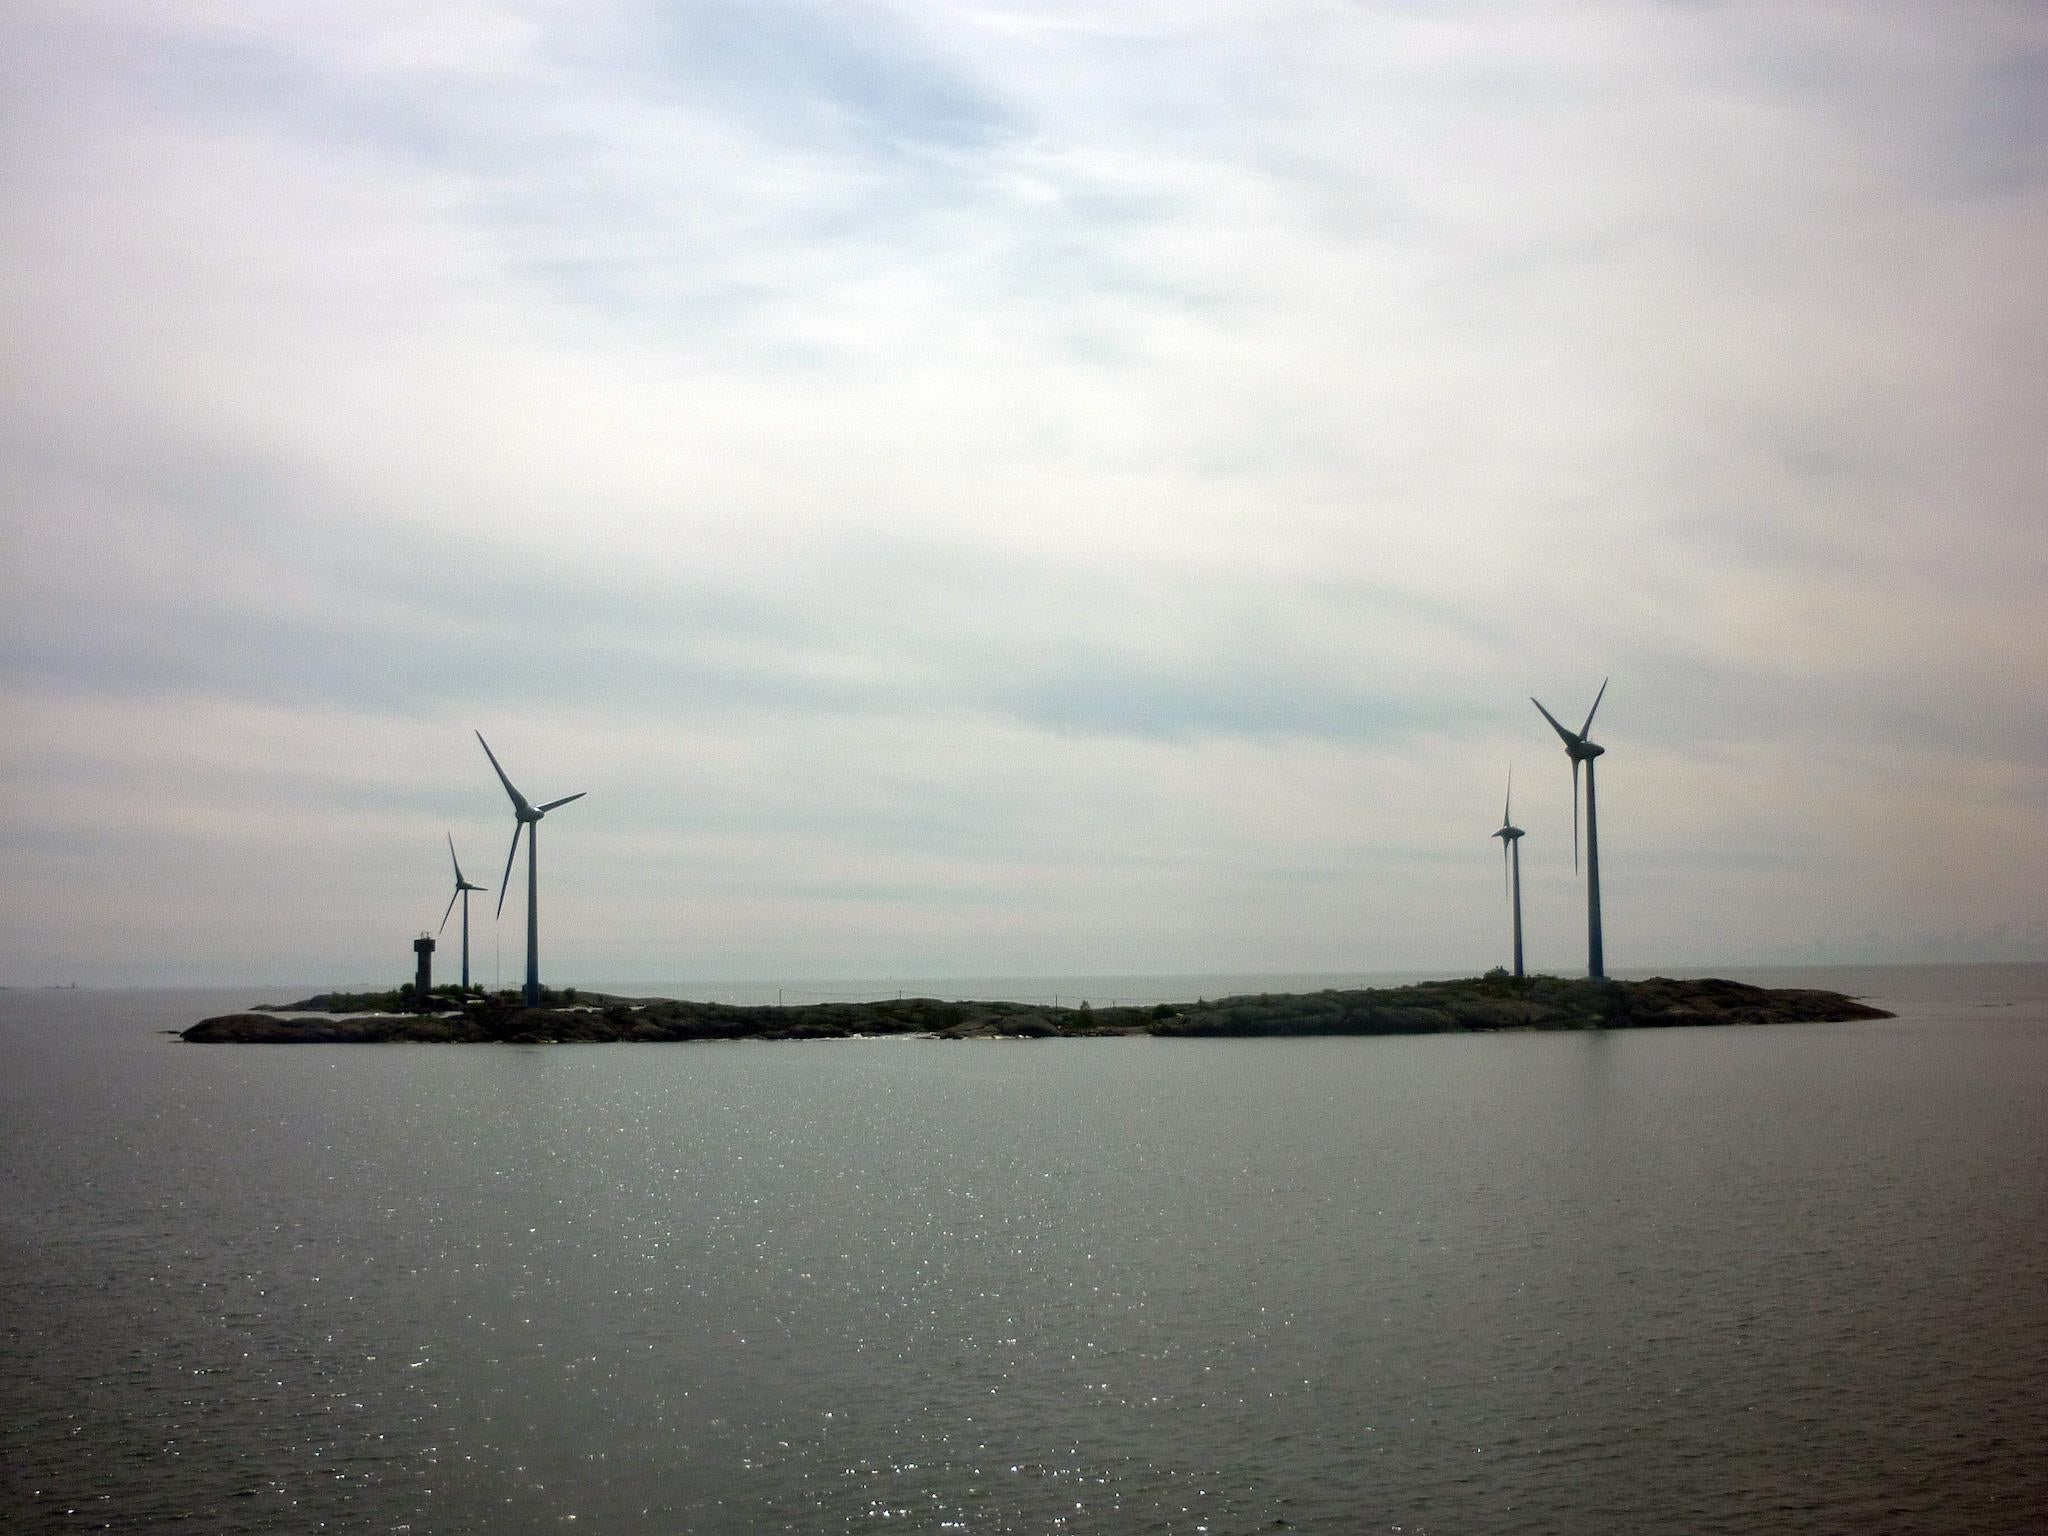 Sweden breaks wind power record by half a million kWh after